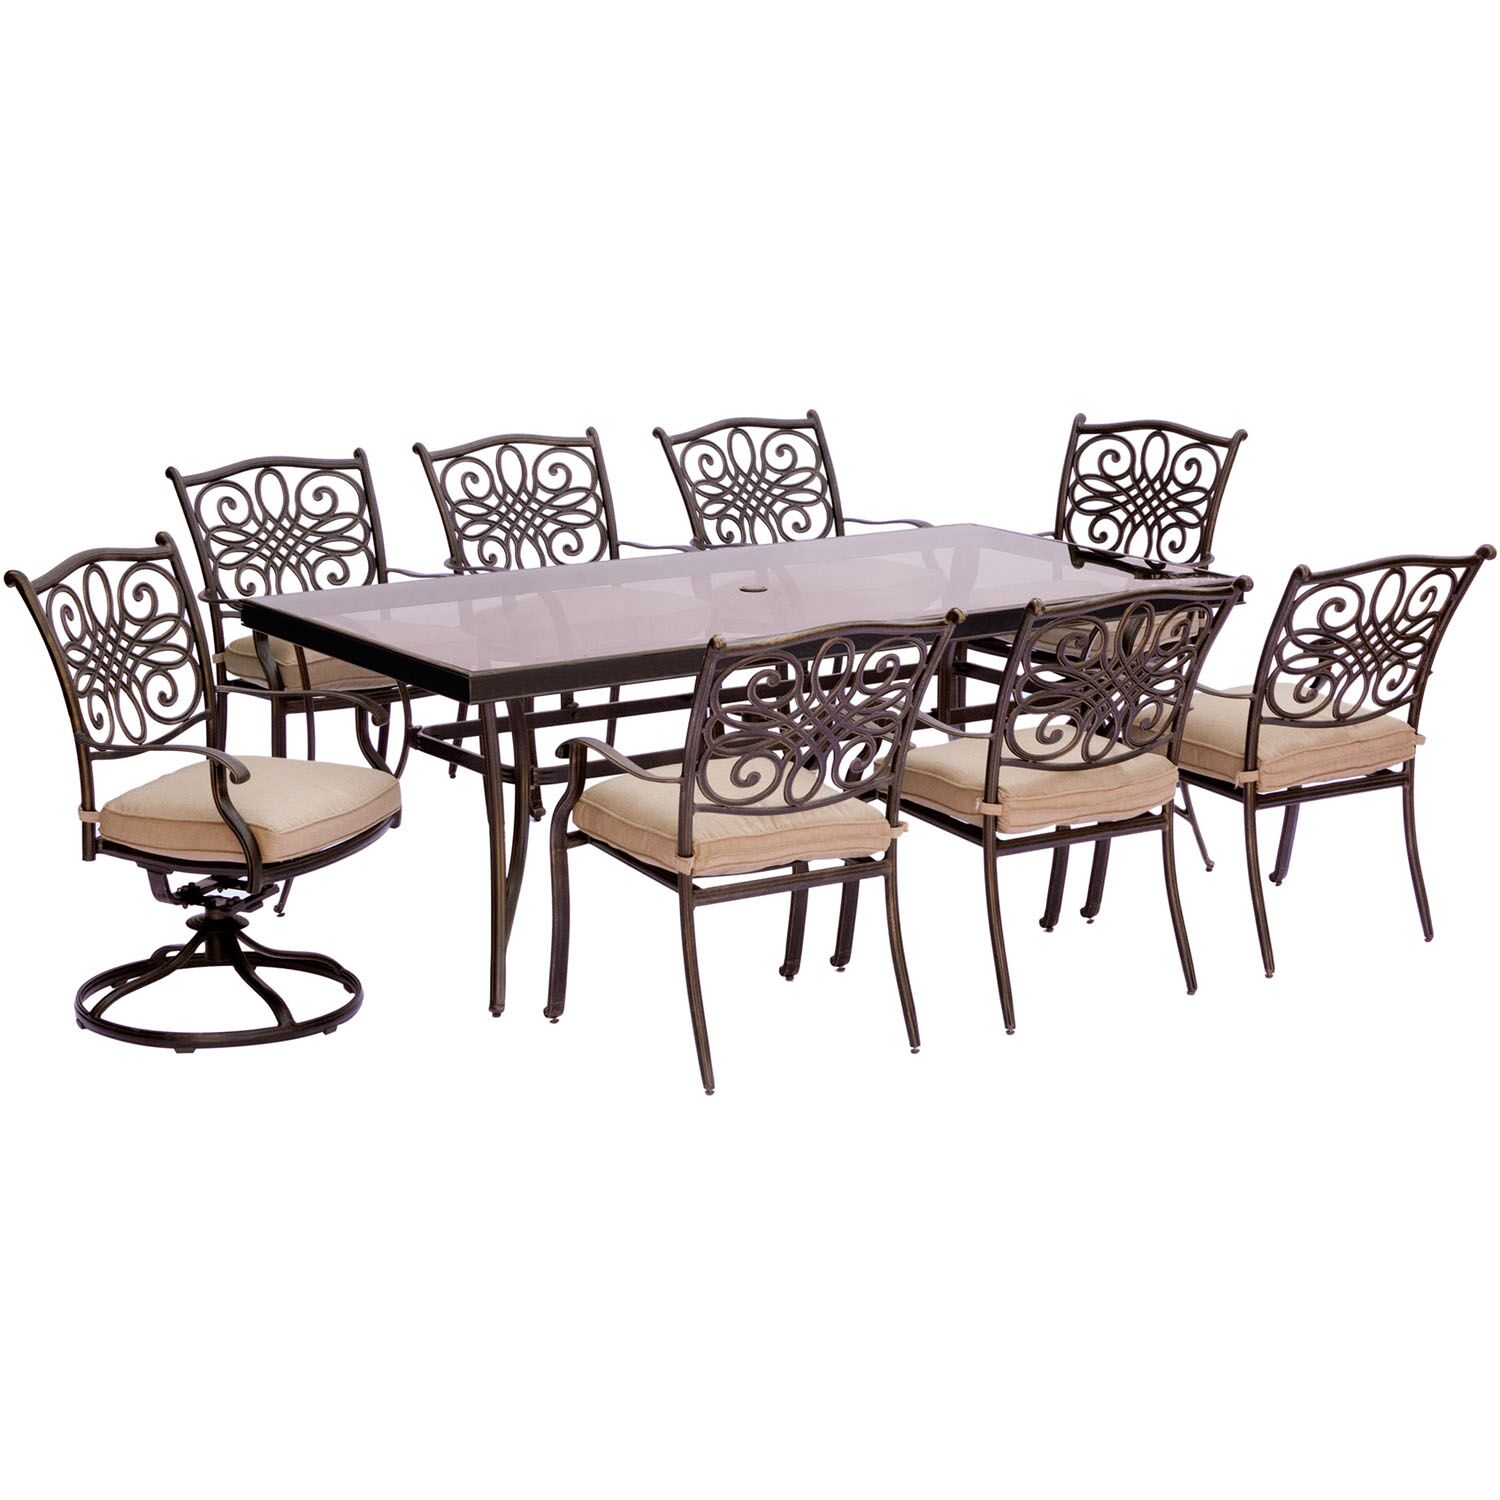 Lauritsen 9 Piece Rectangular Glass Top Dining Set with Cushions Cushion Color: Natural Oat